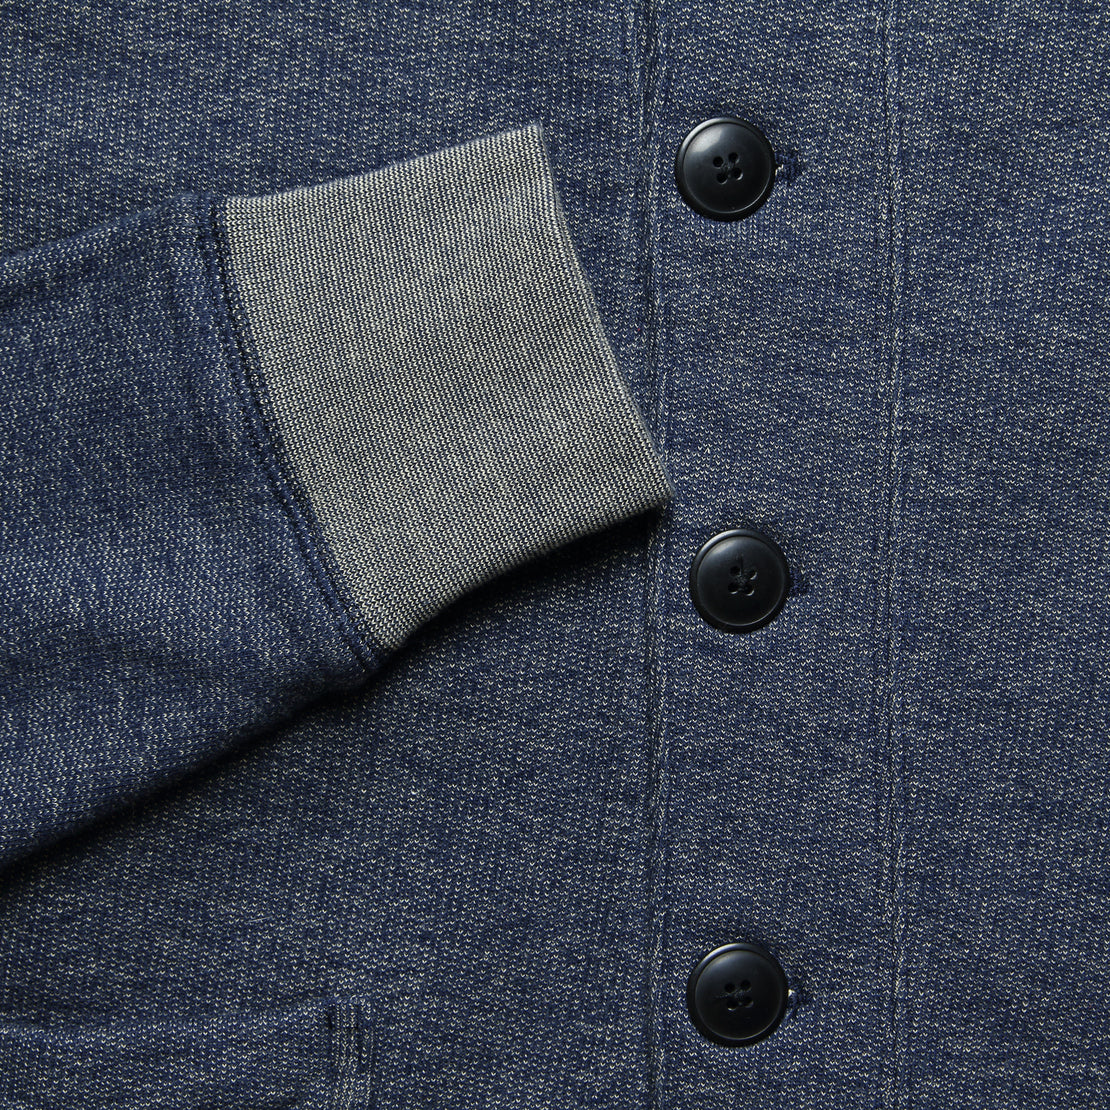 Birch Shawl Cardigan - Denim Blue - Grayers - STAG Provisions - Tops - Sweater